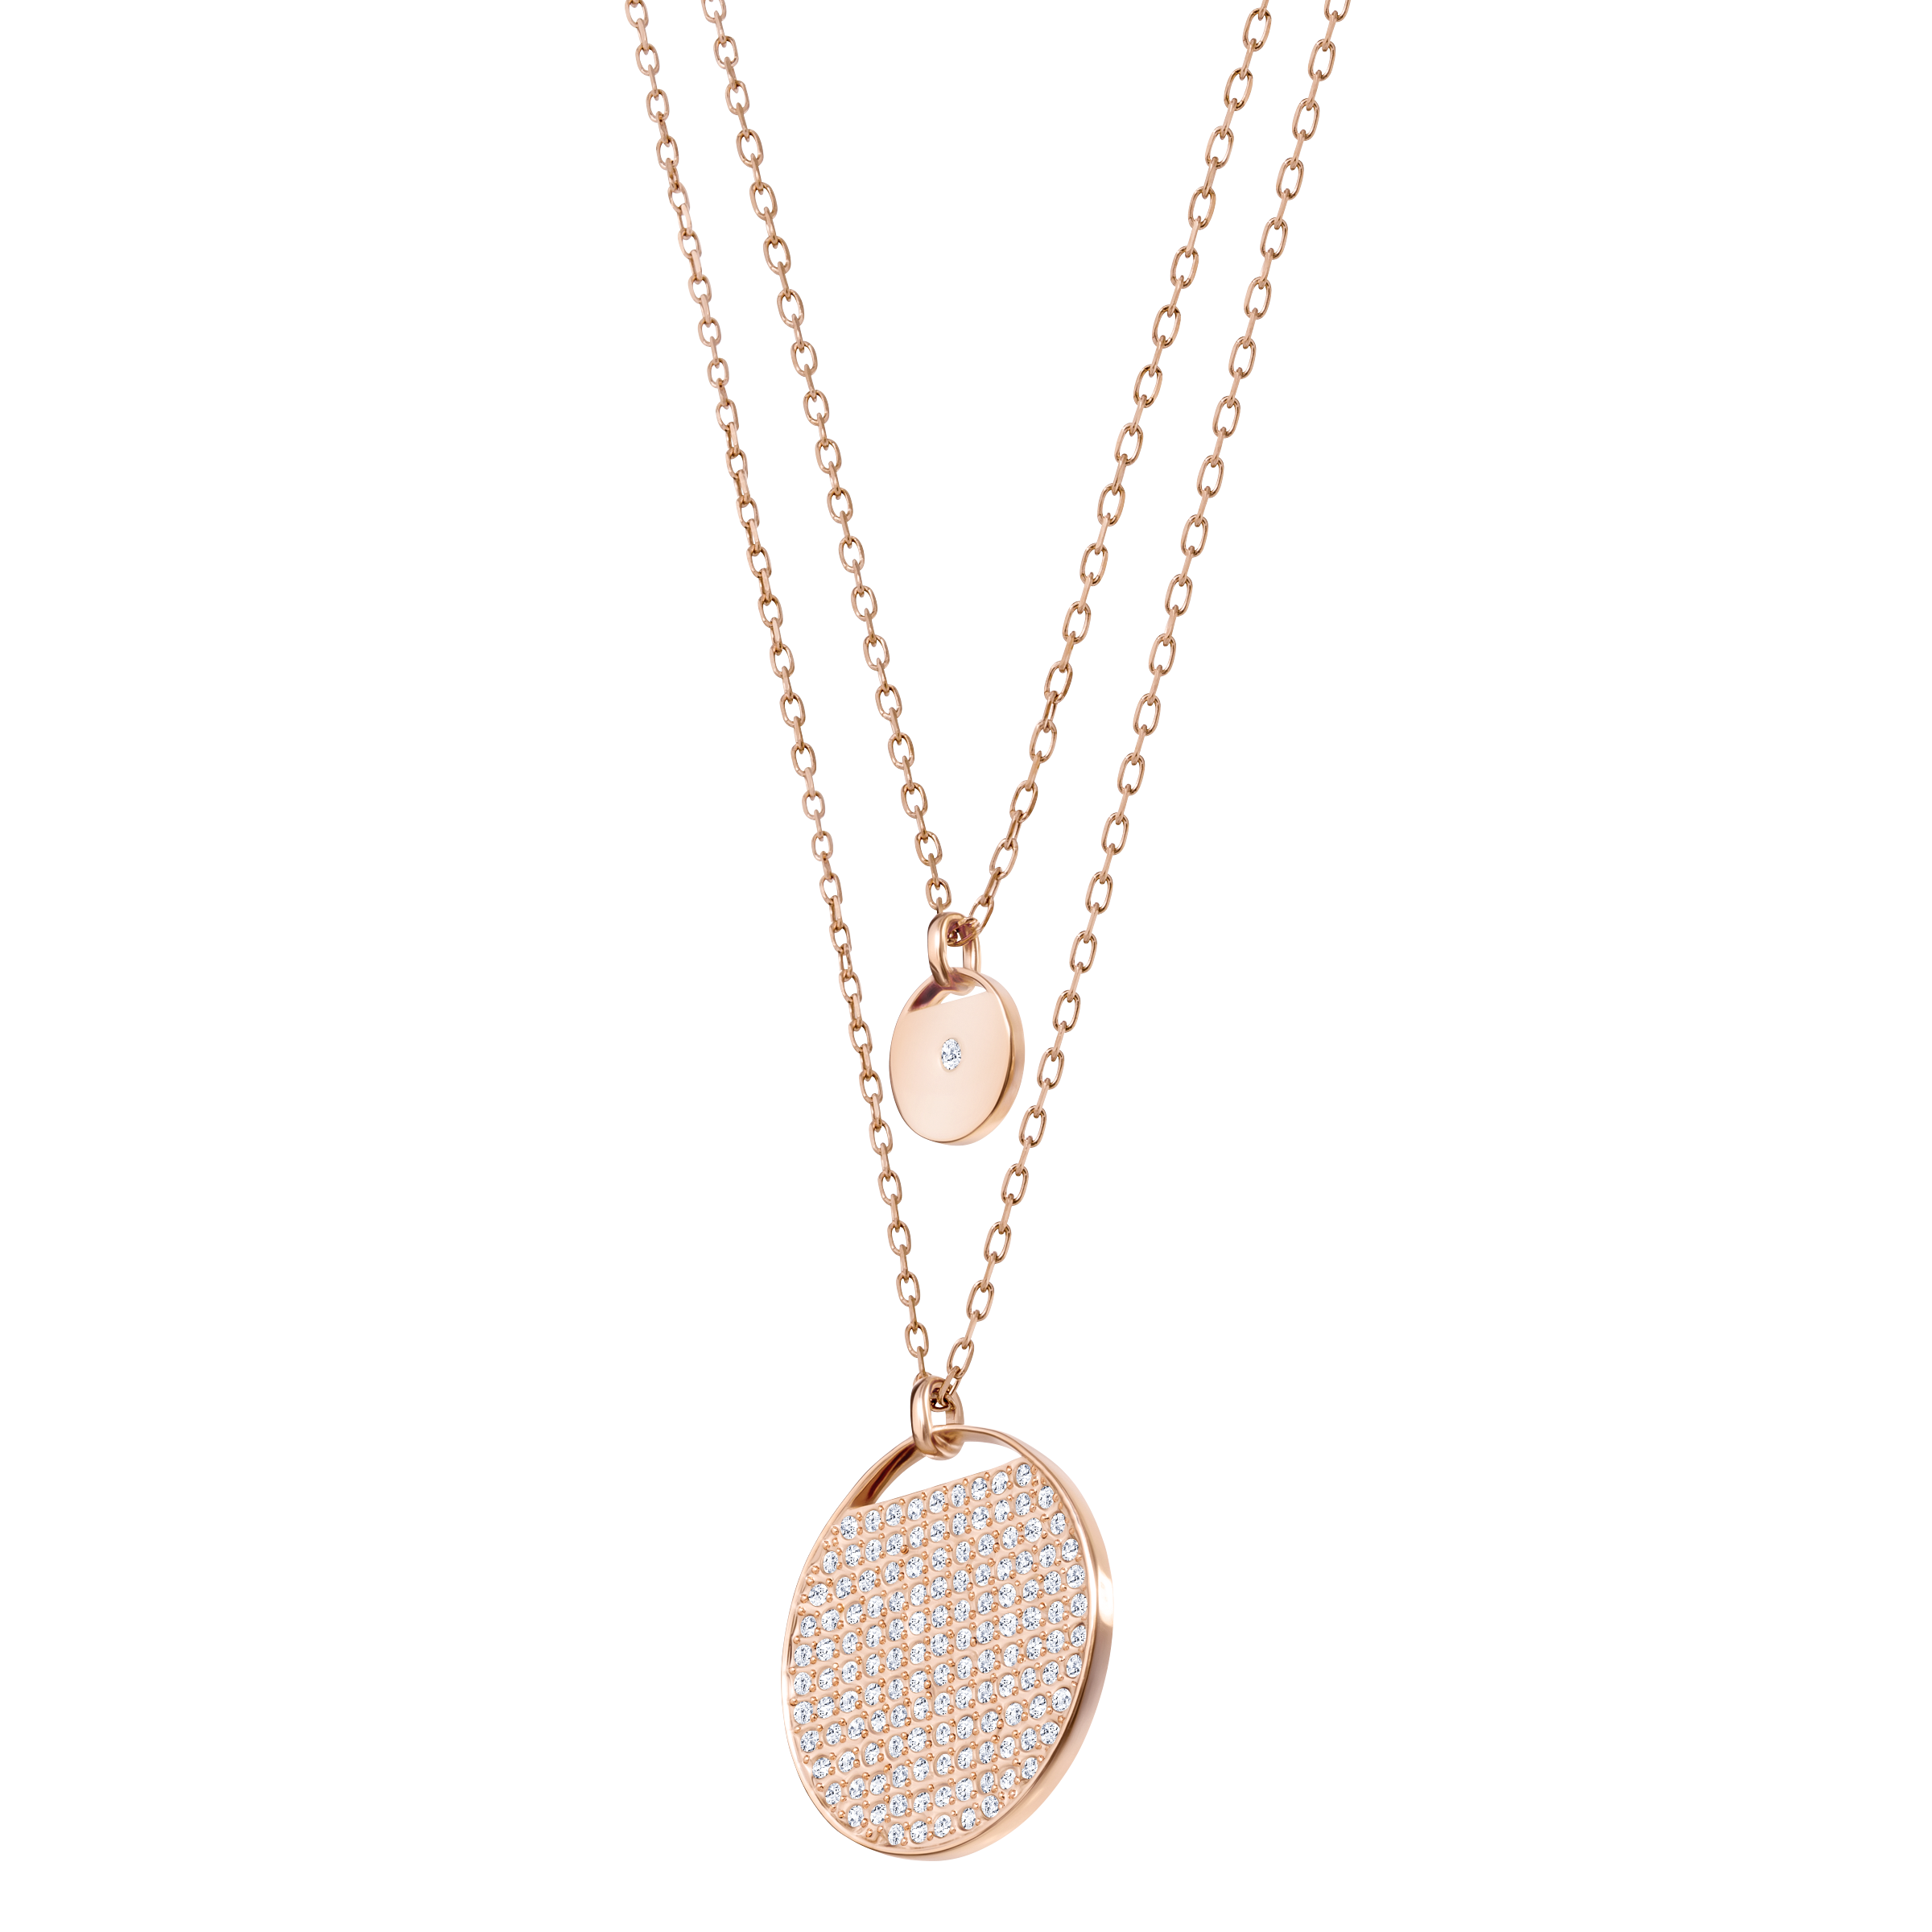 Ginger Layered Pendant, White, Rose Gold Plated